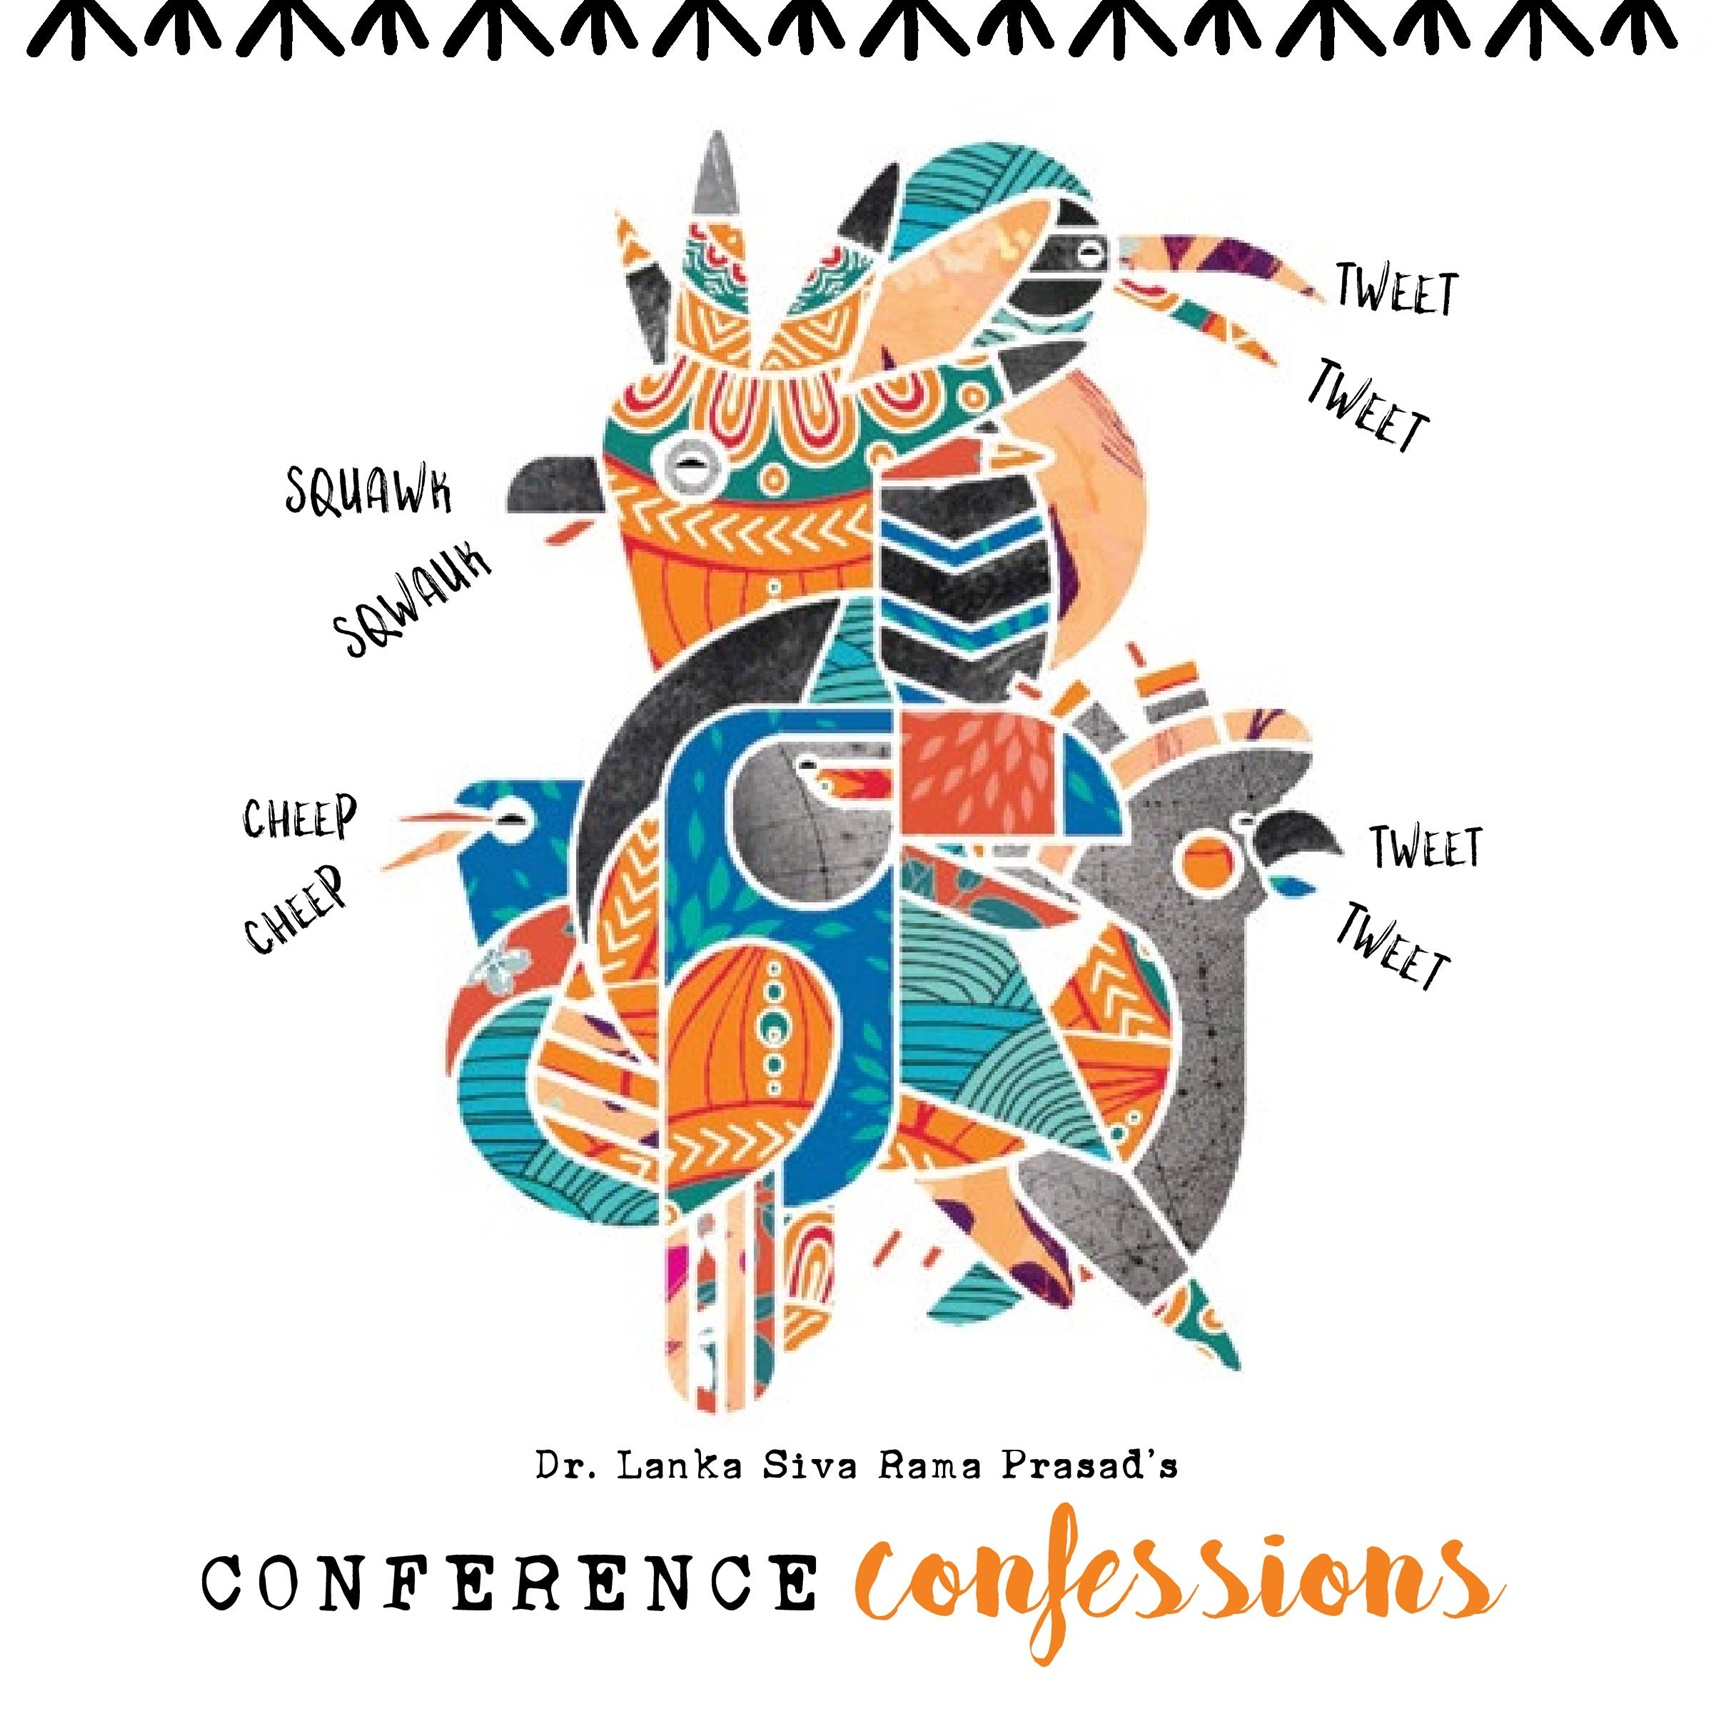 Conference Confessions